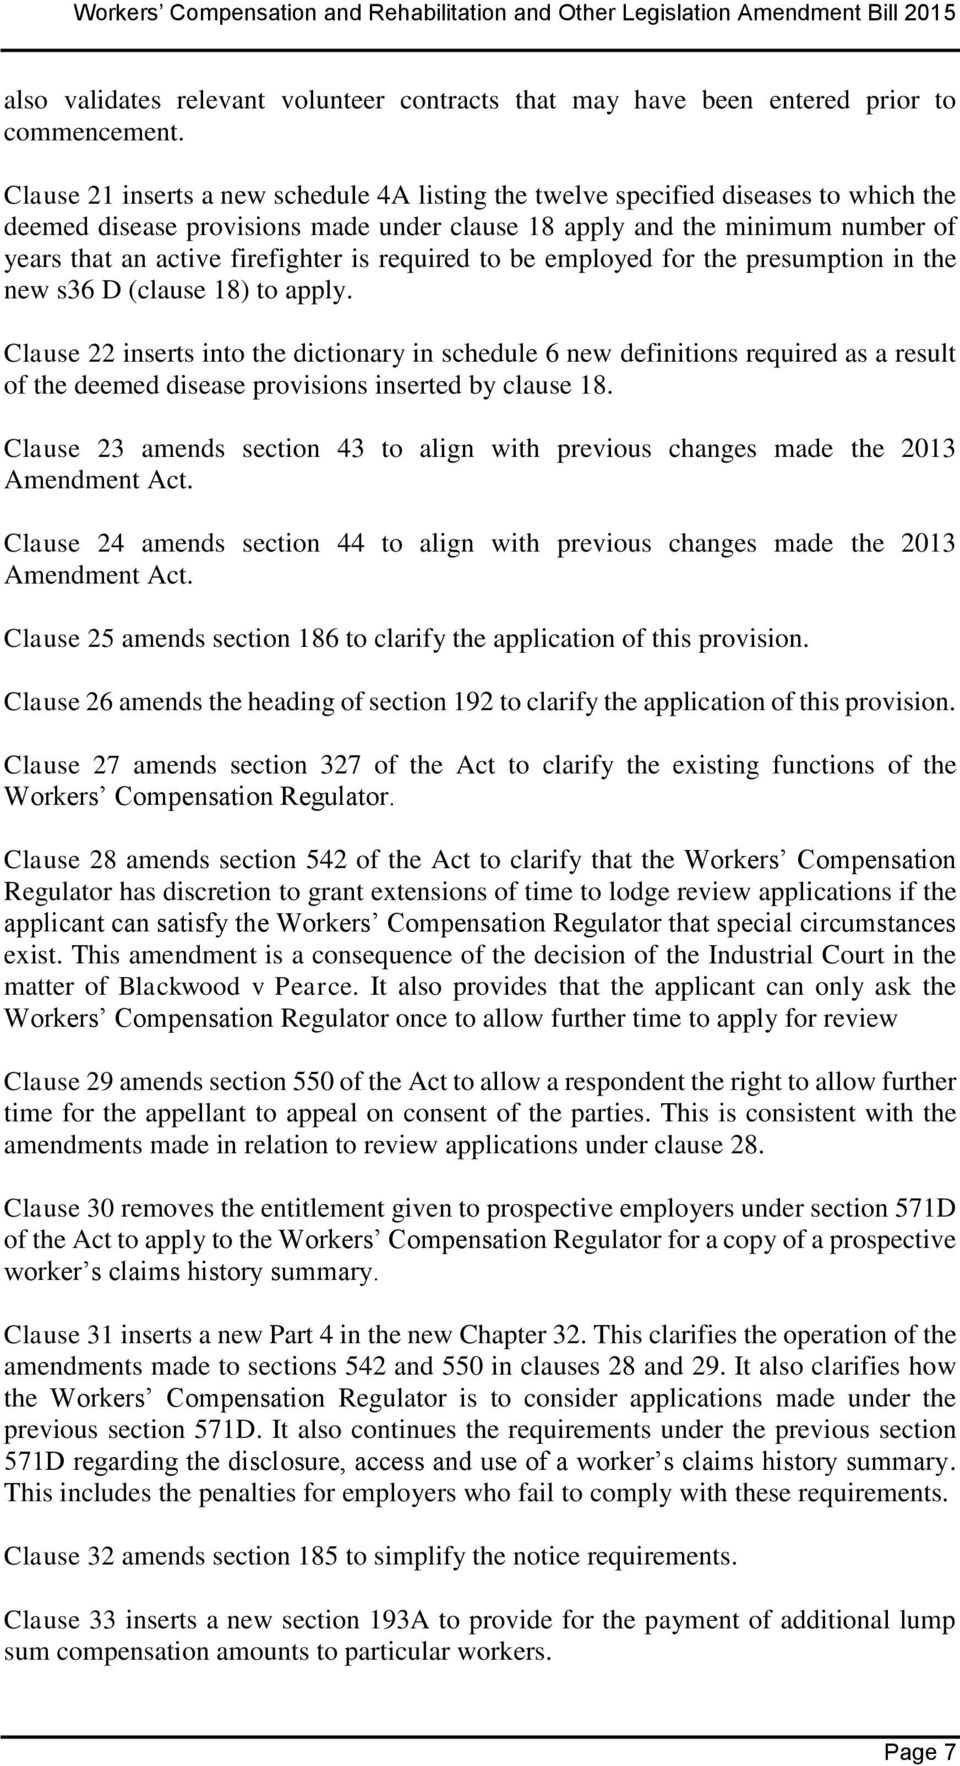 is required to be employed for the presumption in the new s36 D (clause 18) to apply.